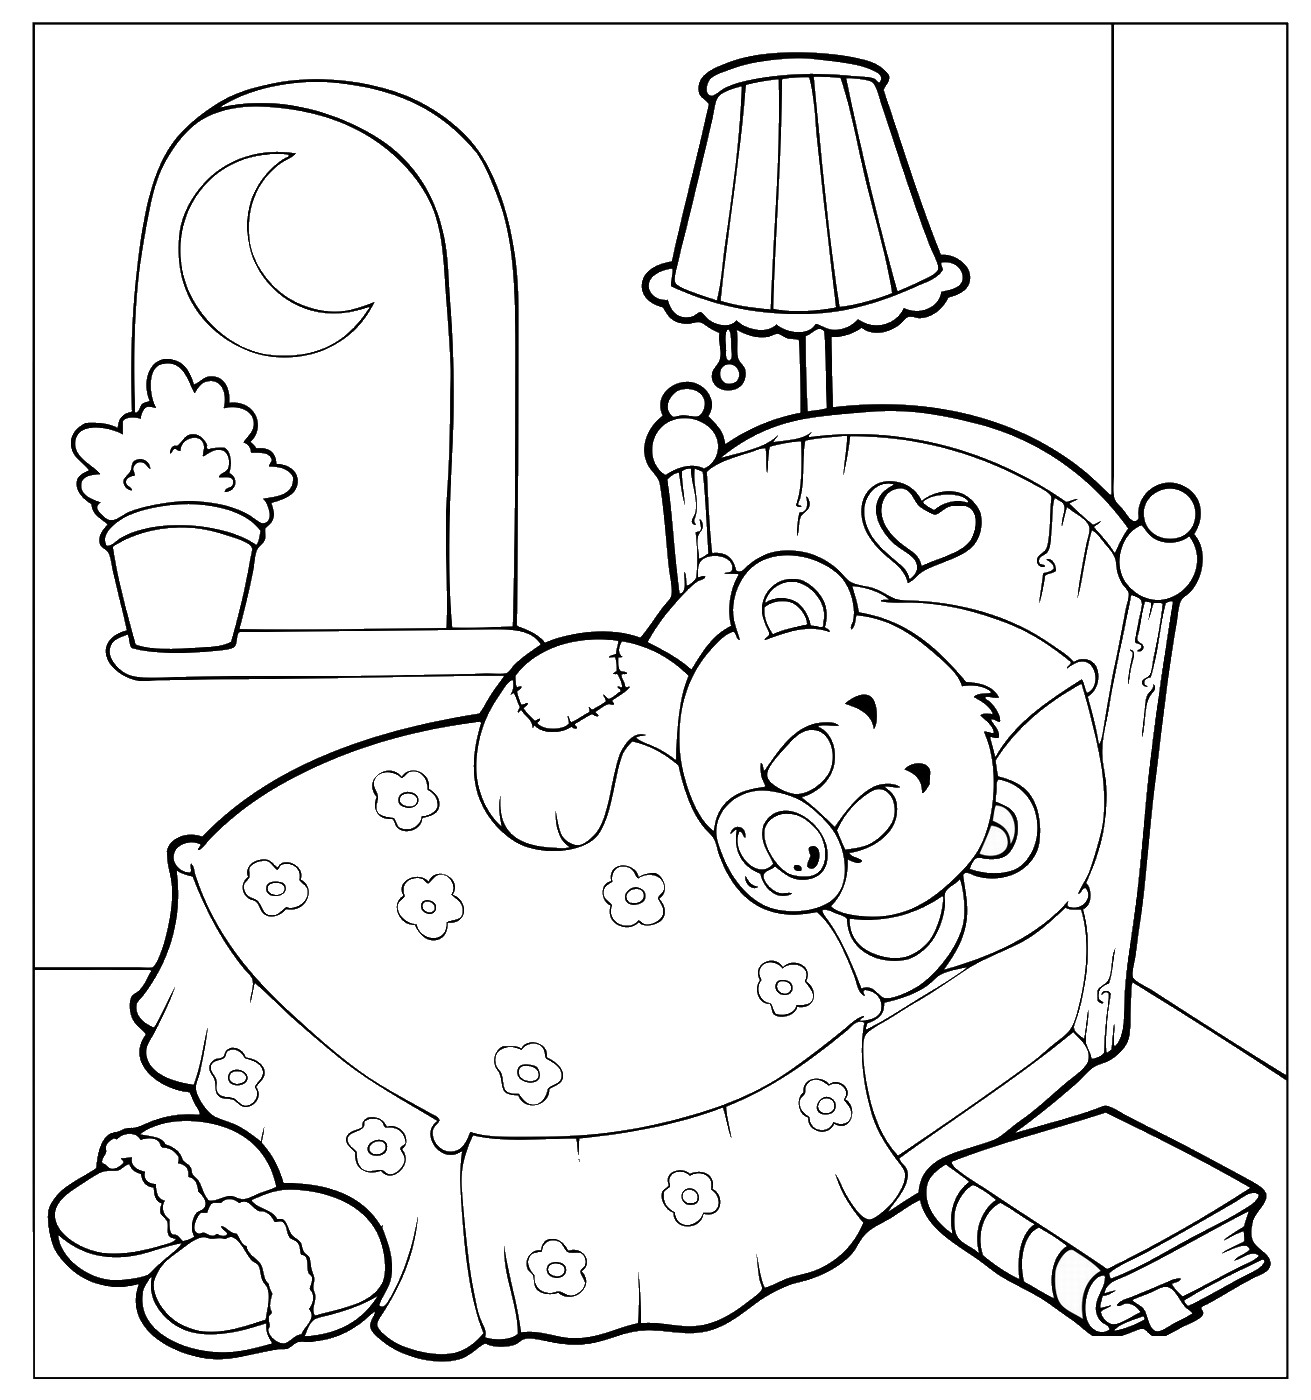 pajama theme coloring pages - photo#6